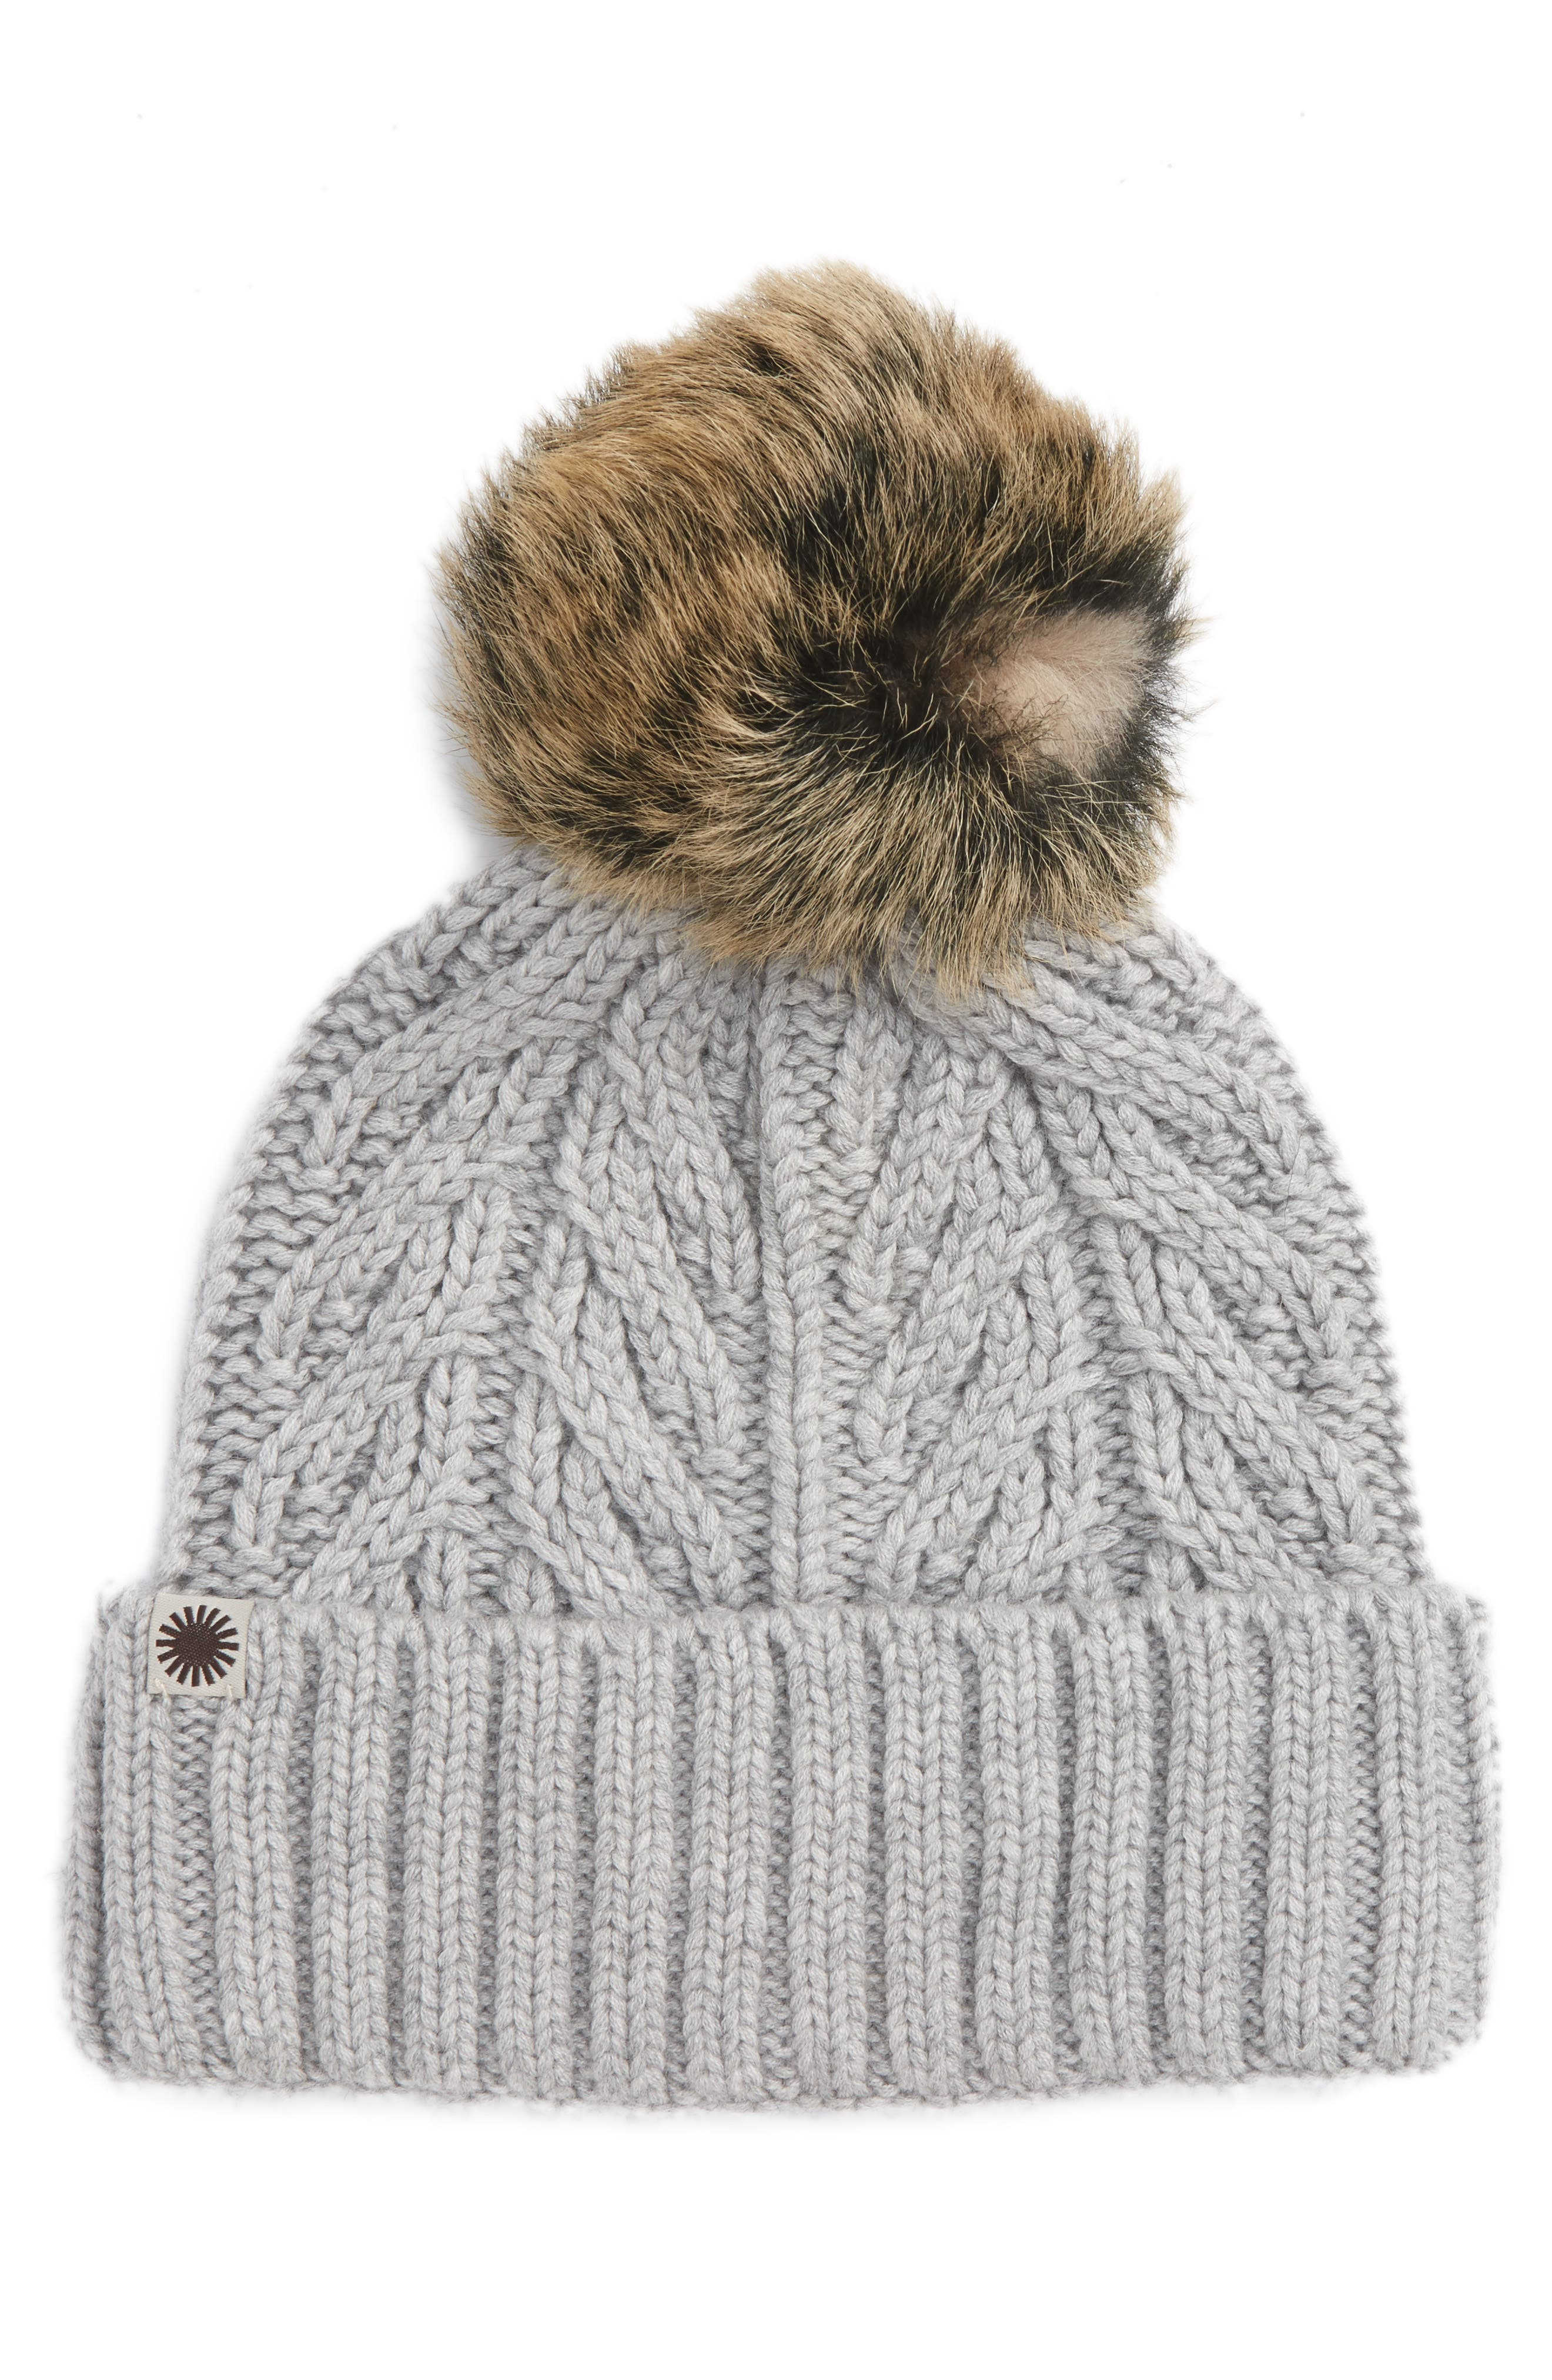 Alternate Image 1 Selected - UGG® Cable Knit Cuff Hat with Genuine Shearling Pom